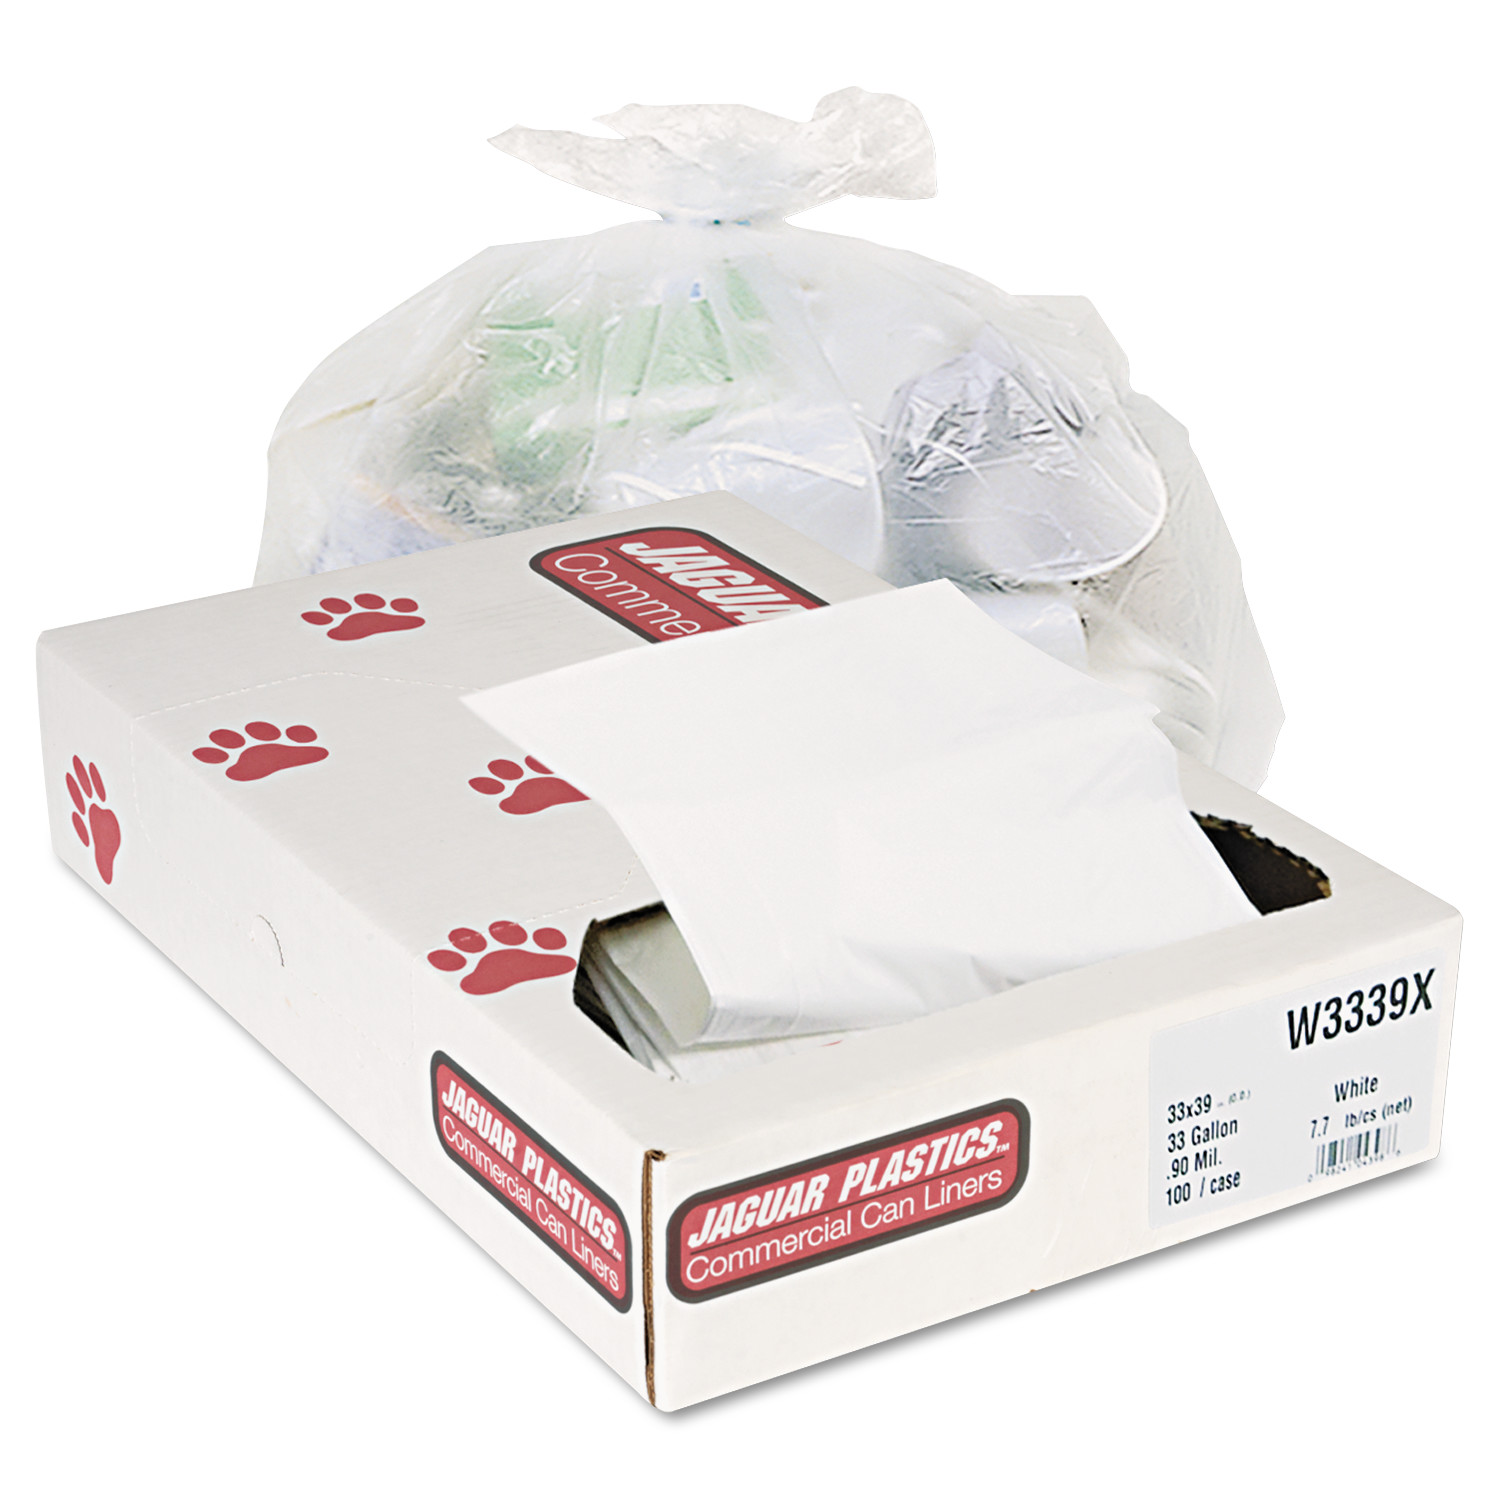 Jaguar Plastics Industrial Strength Commercial Trash Bags, 33gal, .9mil, White, 100/Carton